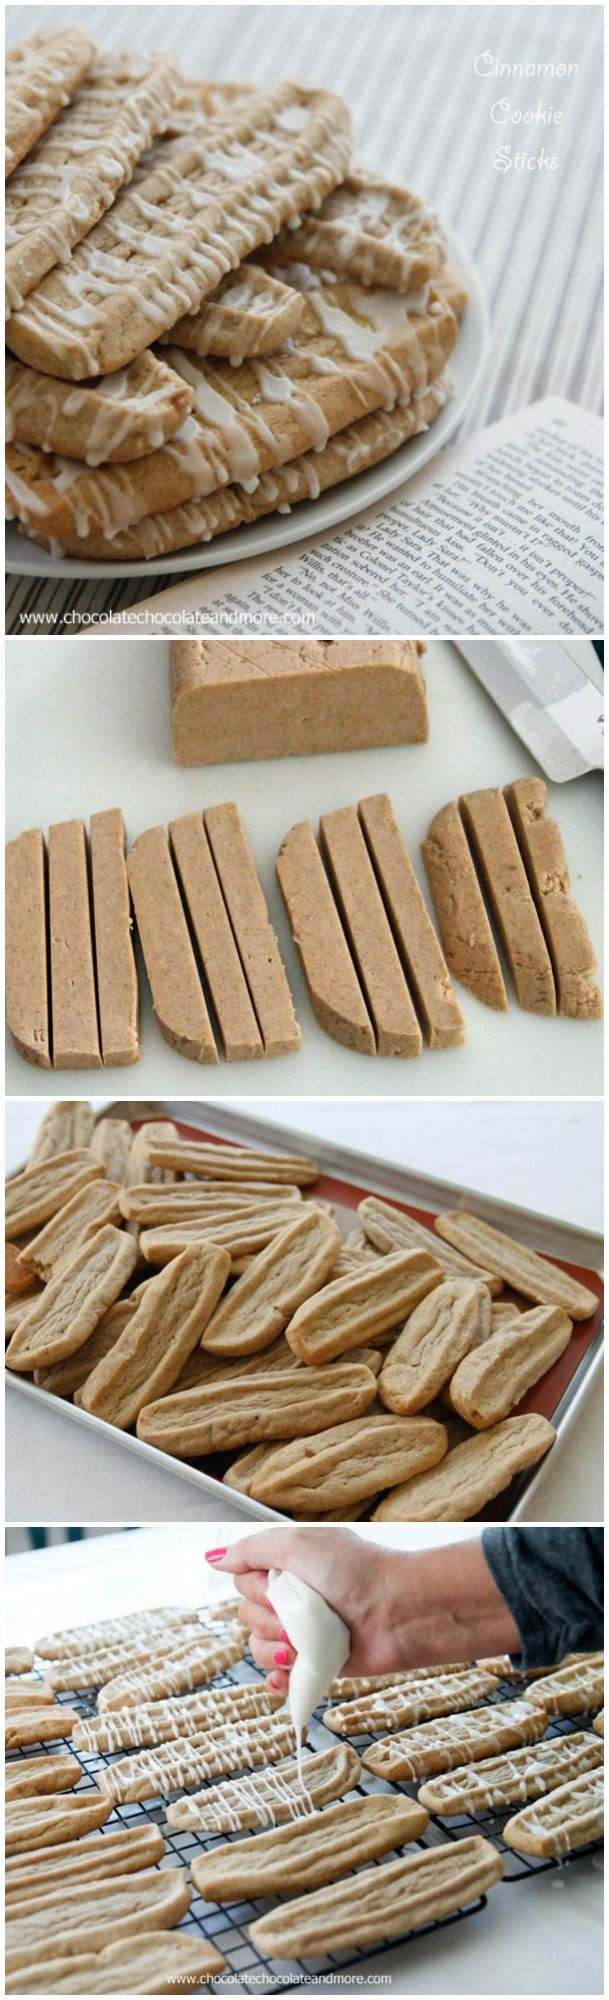 Cinnamon Cookie Sticks